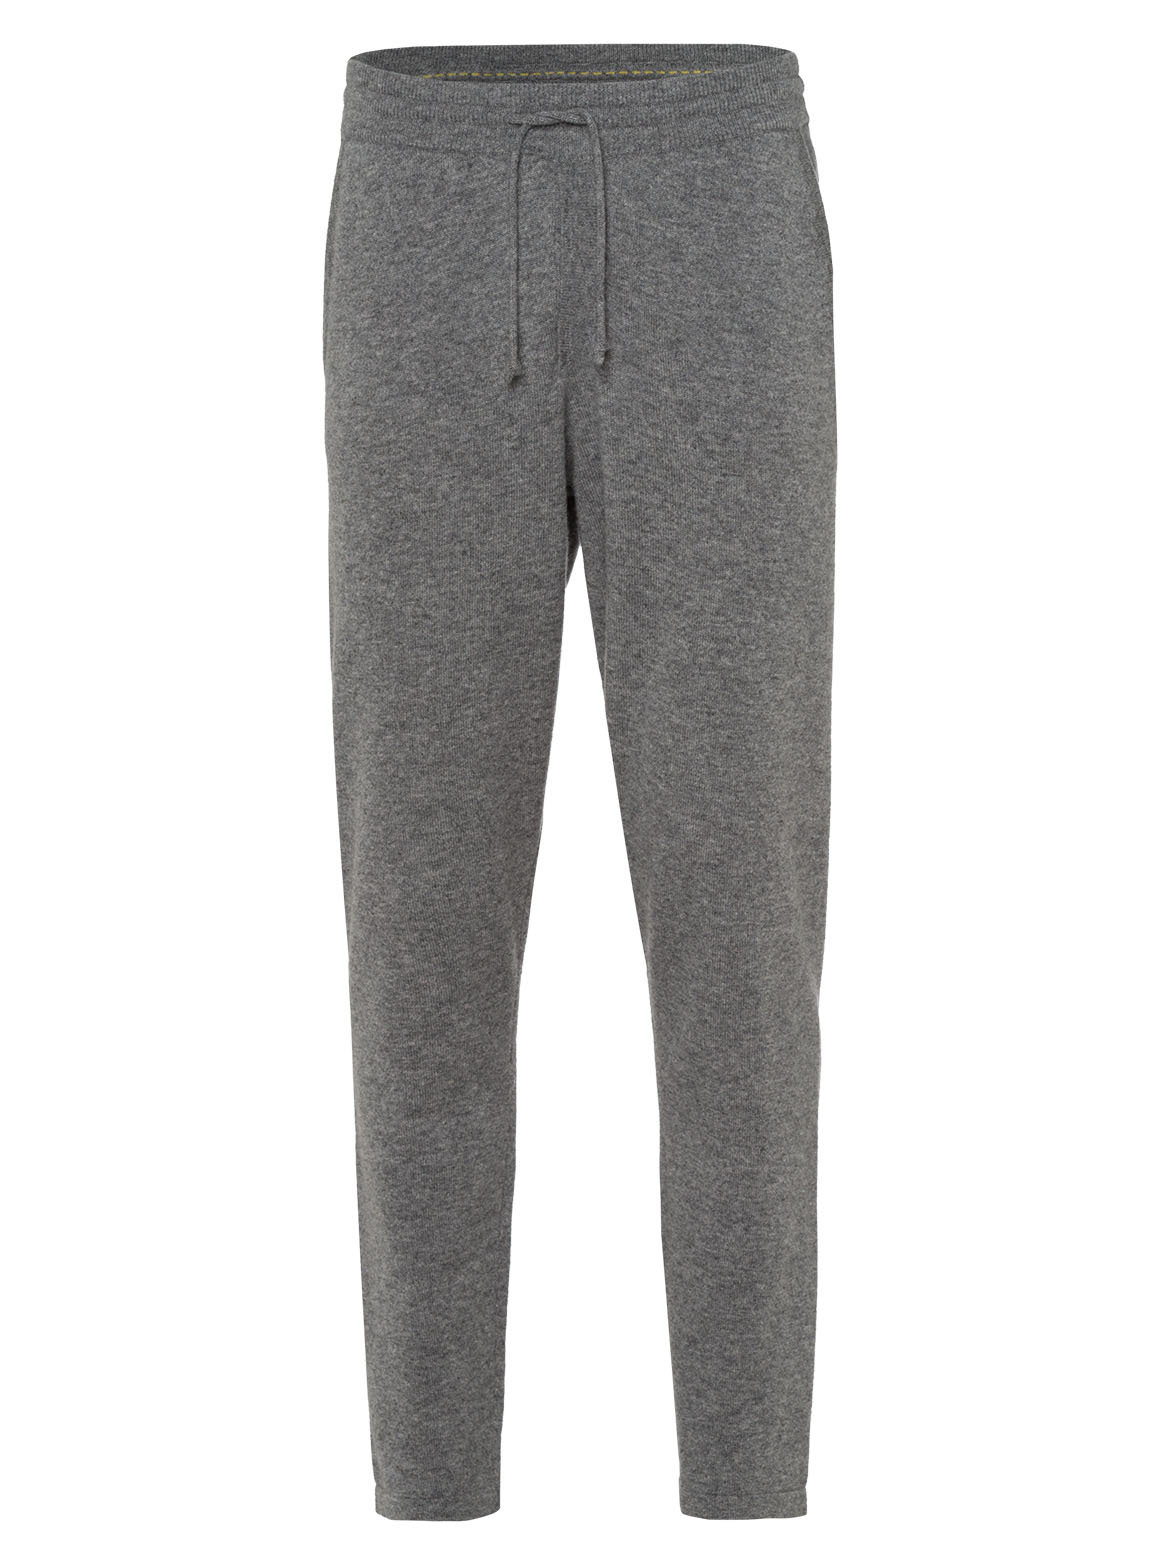 Trousers with straight cuffs